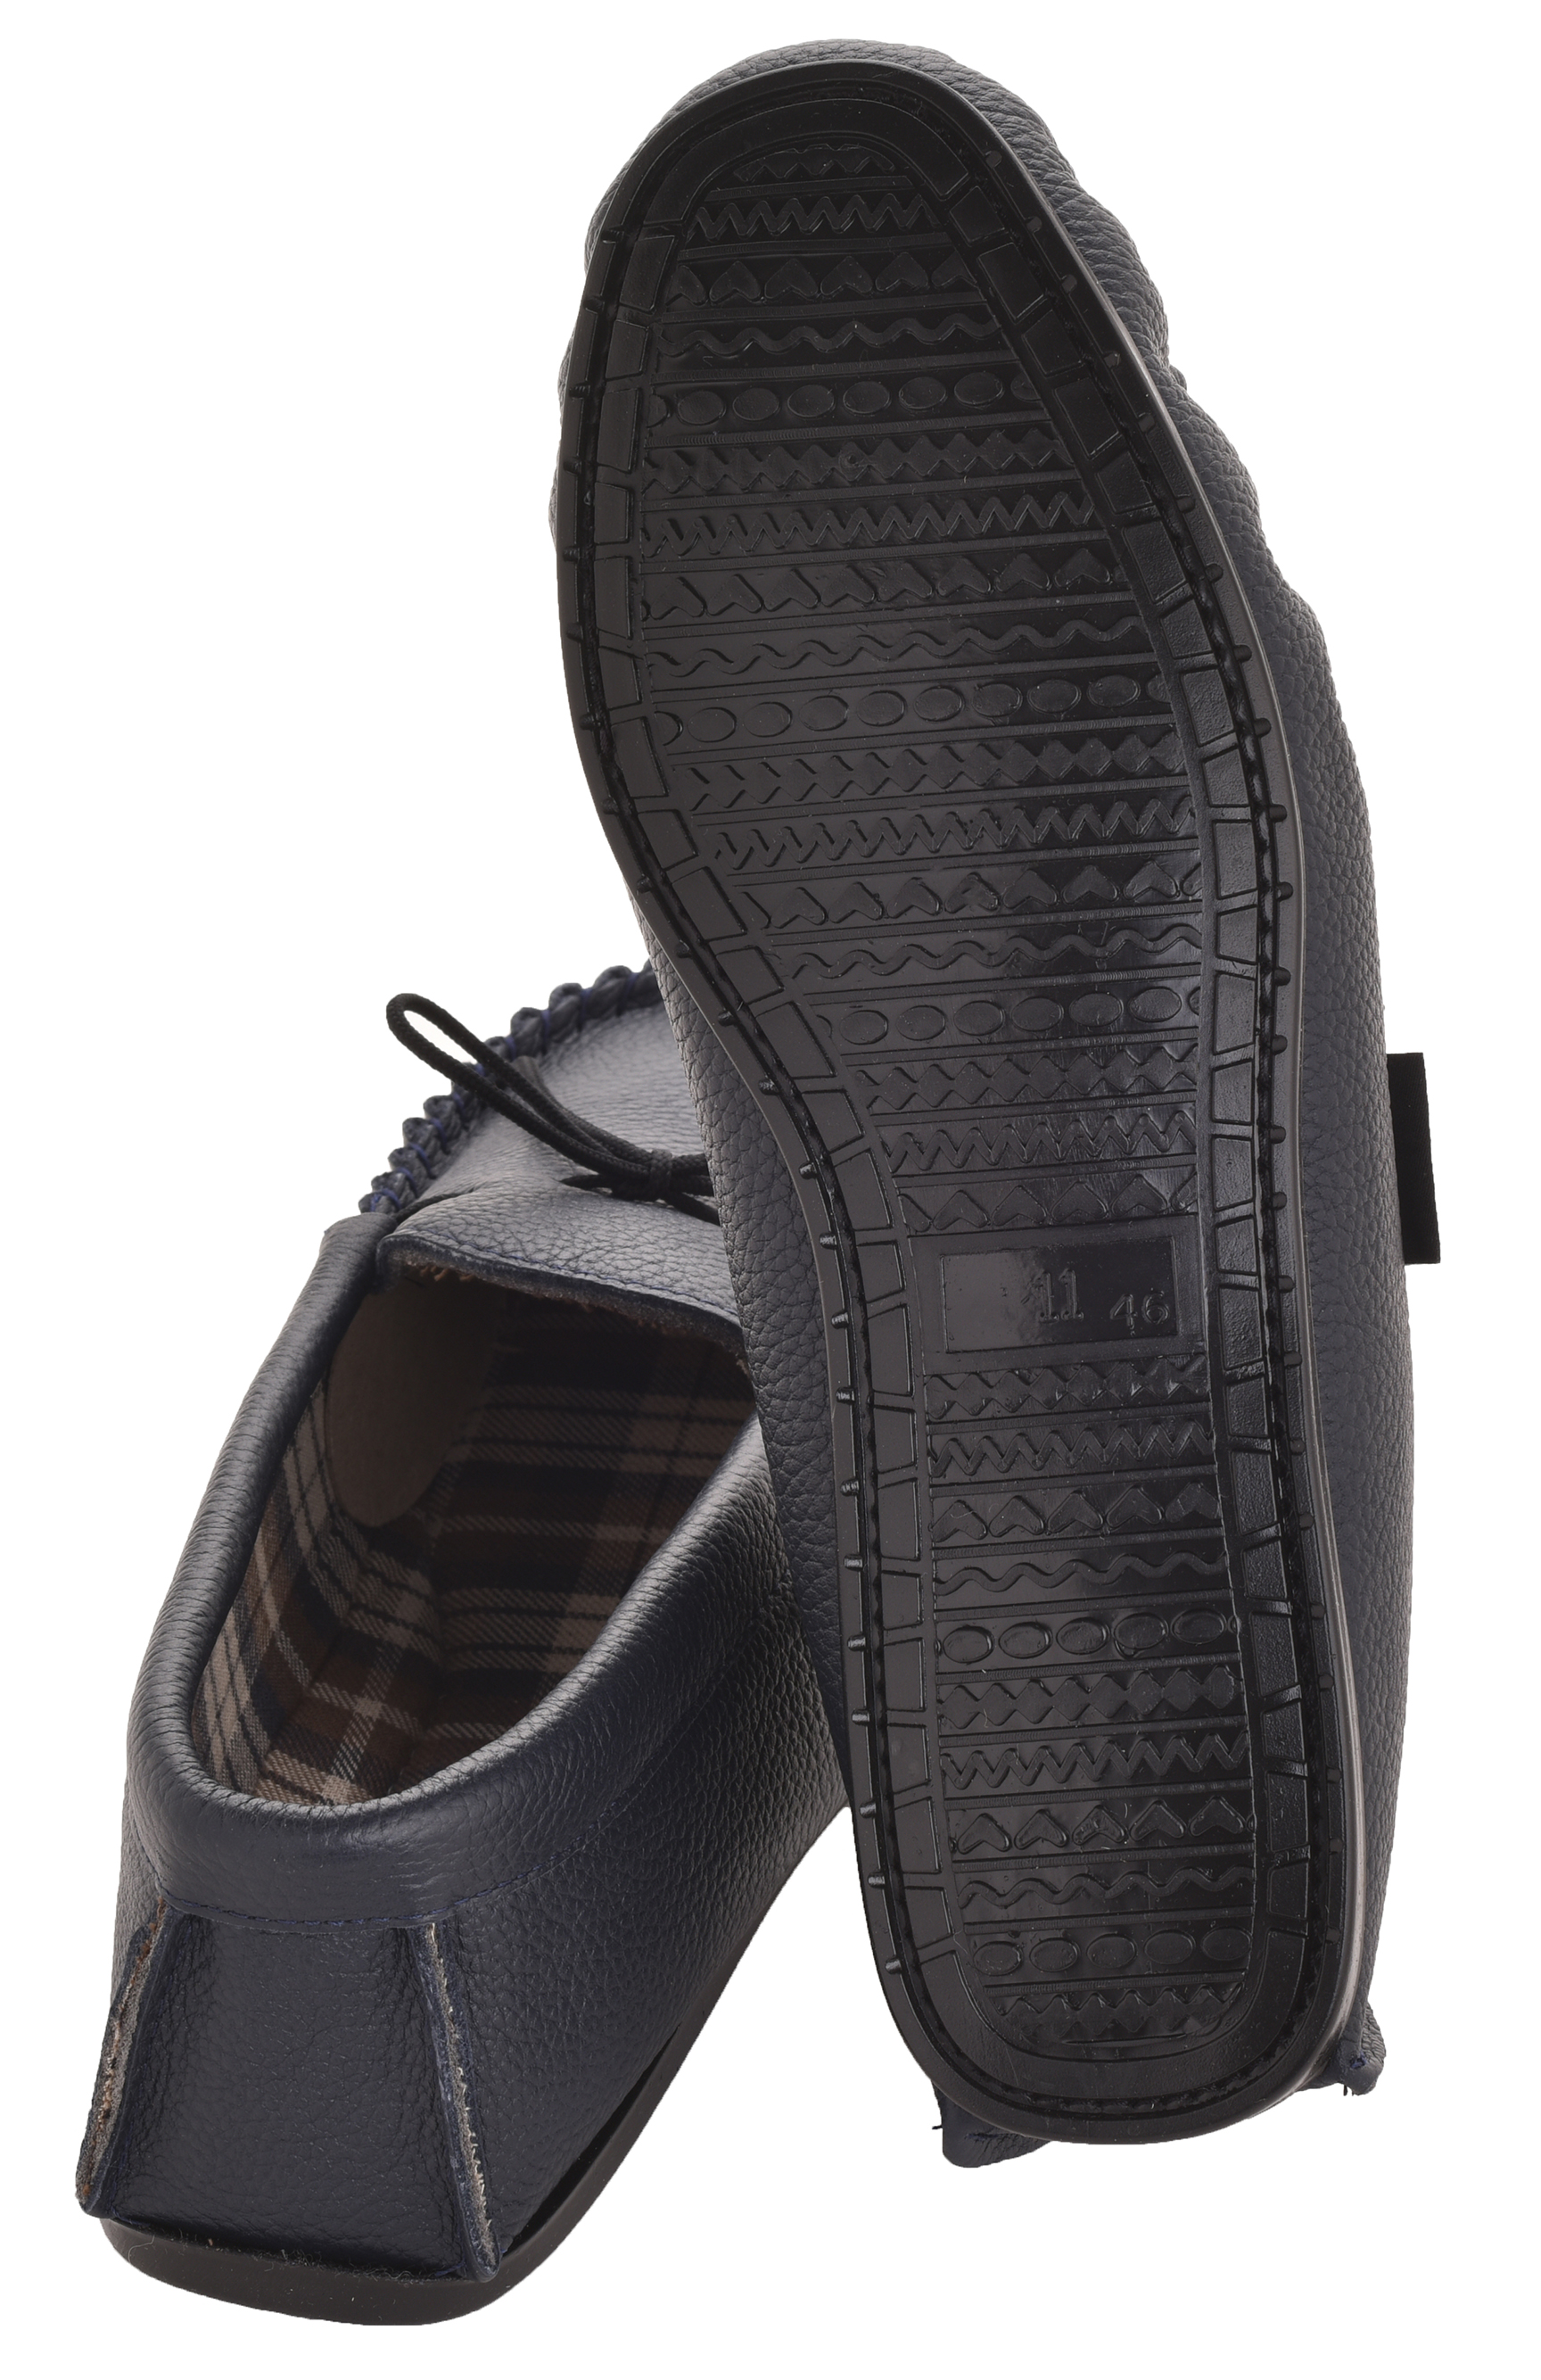 Leather-Moccasin-Slippers-UK-Made-for-Men-and-Ladies-Cotton-Lining-by-Lambland thumbnail 22